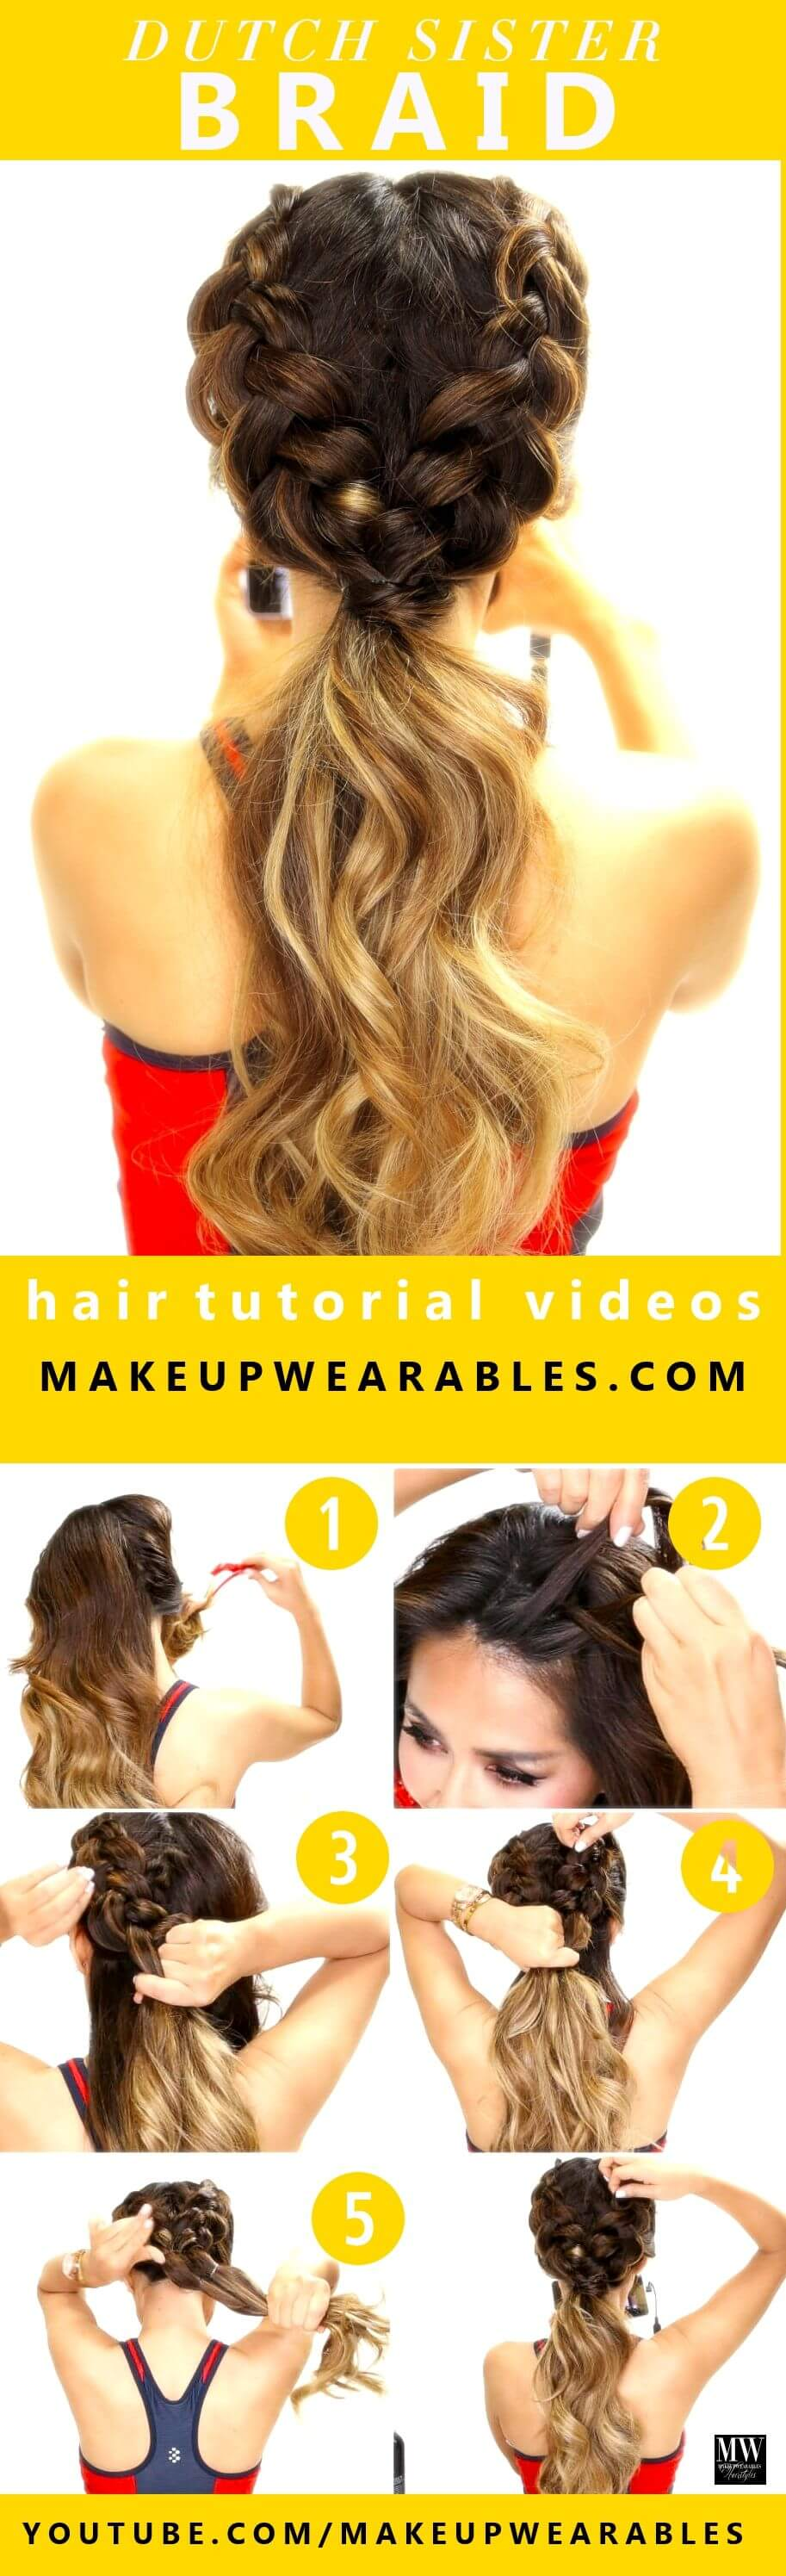 Make two braids that connect